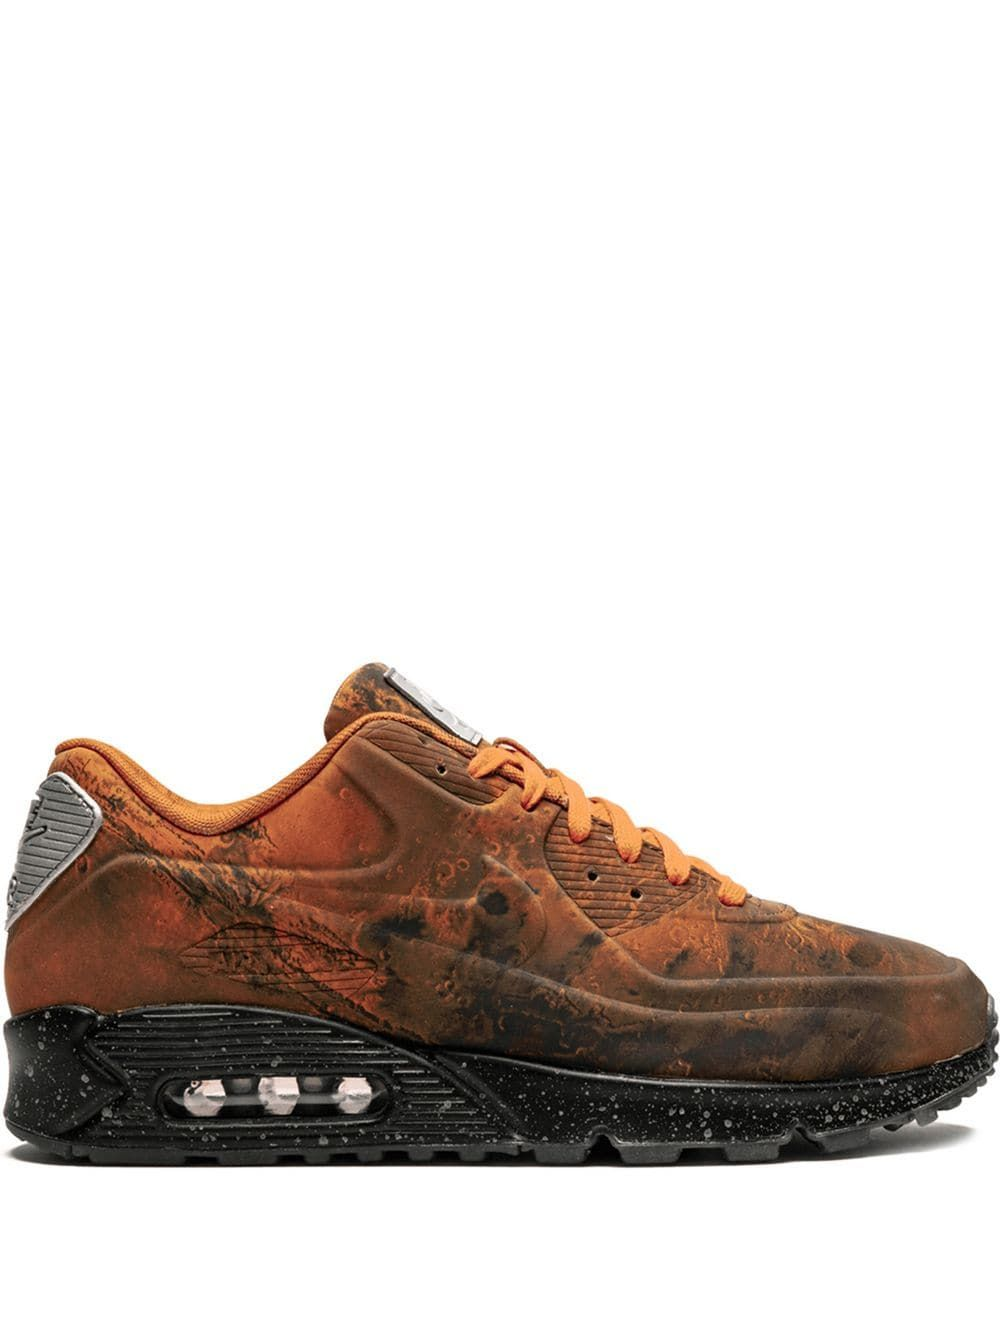 Nike Air Max 90 Mars Landing Sneakers In 2020 Nike Air Max Nike Air Nike